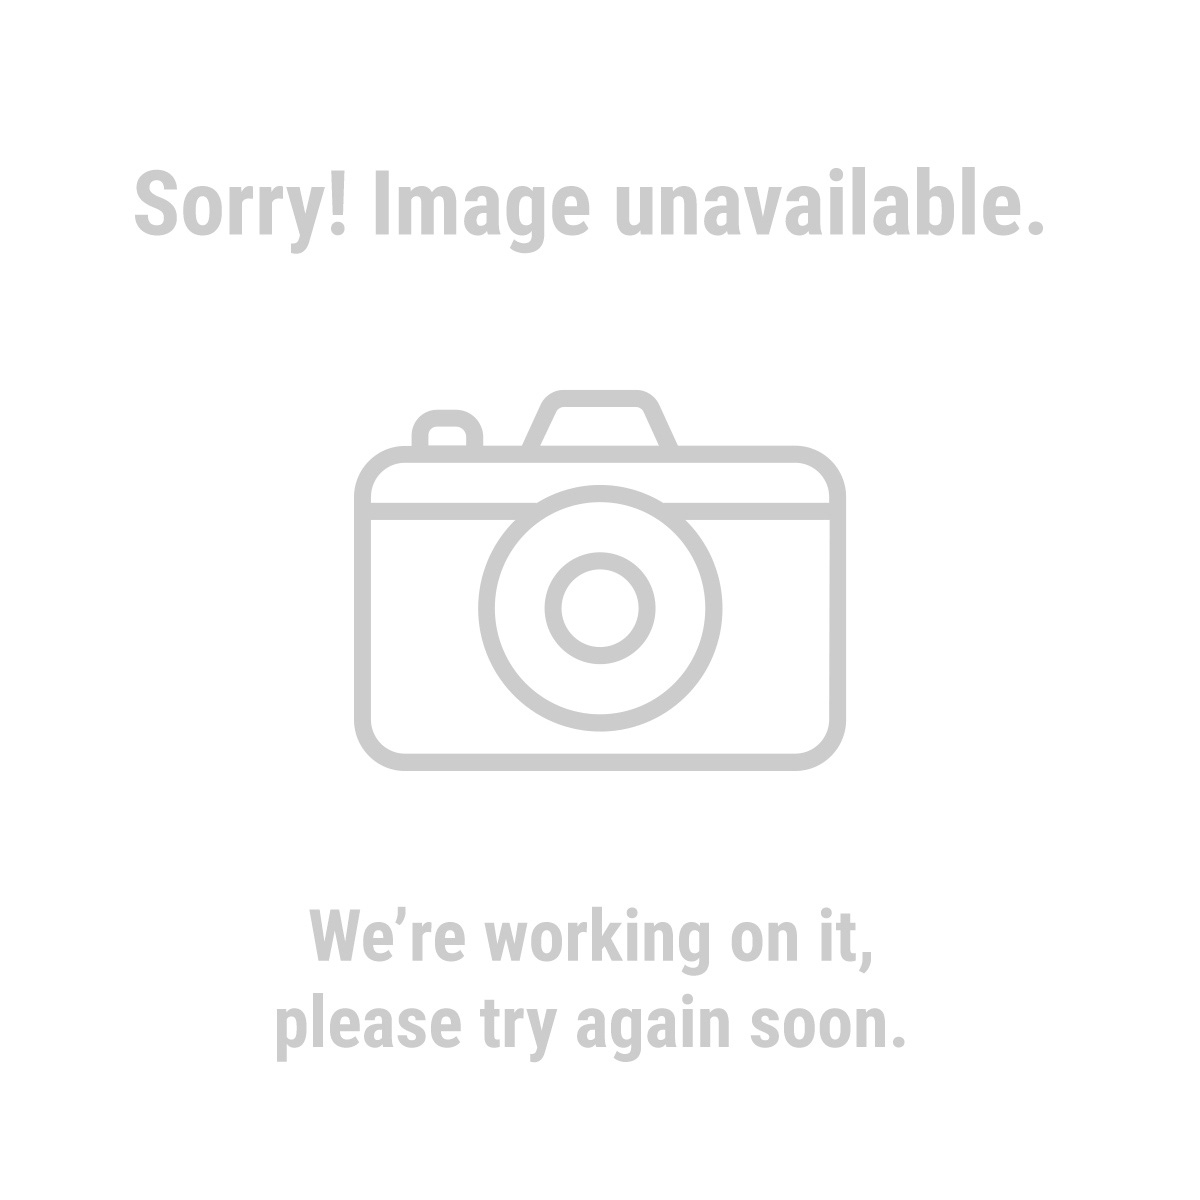 Kitchen Fatigue Floor Mat Similiar Boat Anti Fatigue Mats Keywords